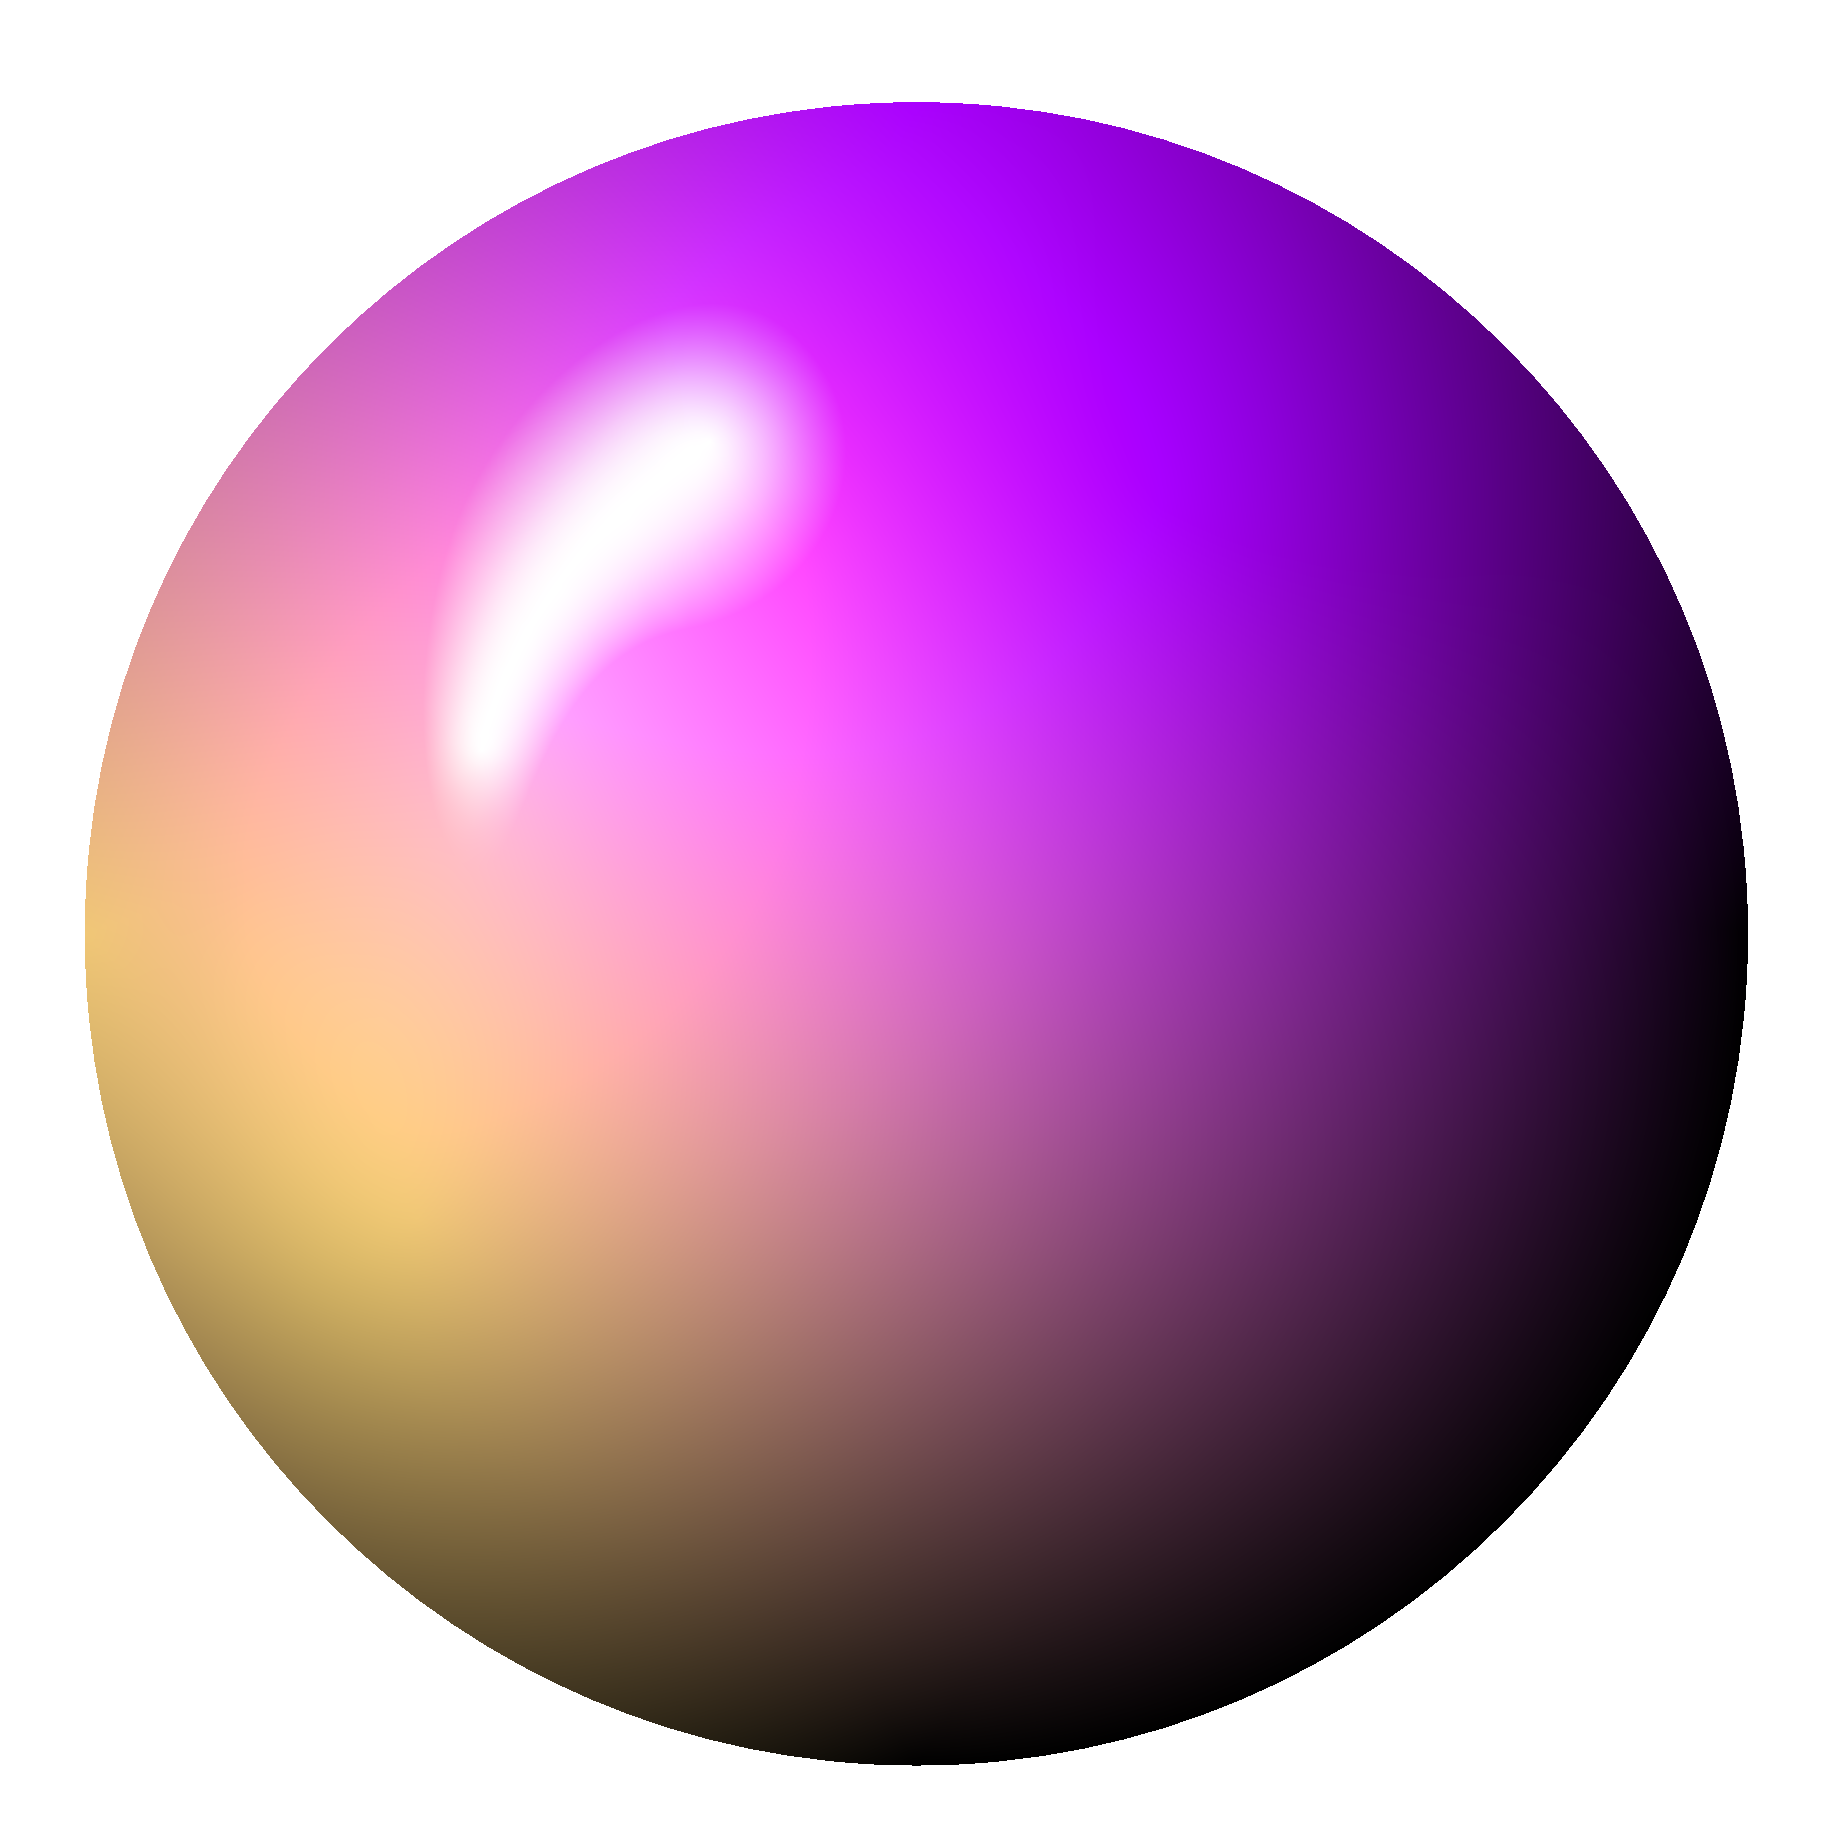 Sphere Transmission Png 1840 1840 Sphere Shapes Painting Subjects